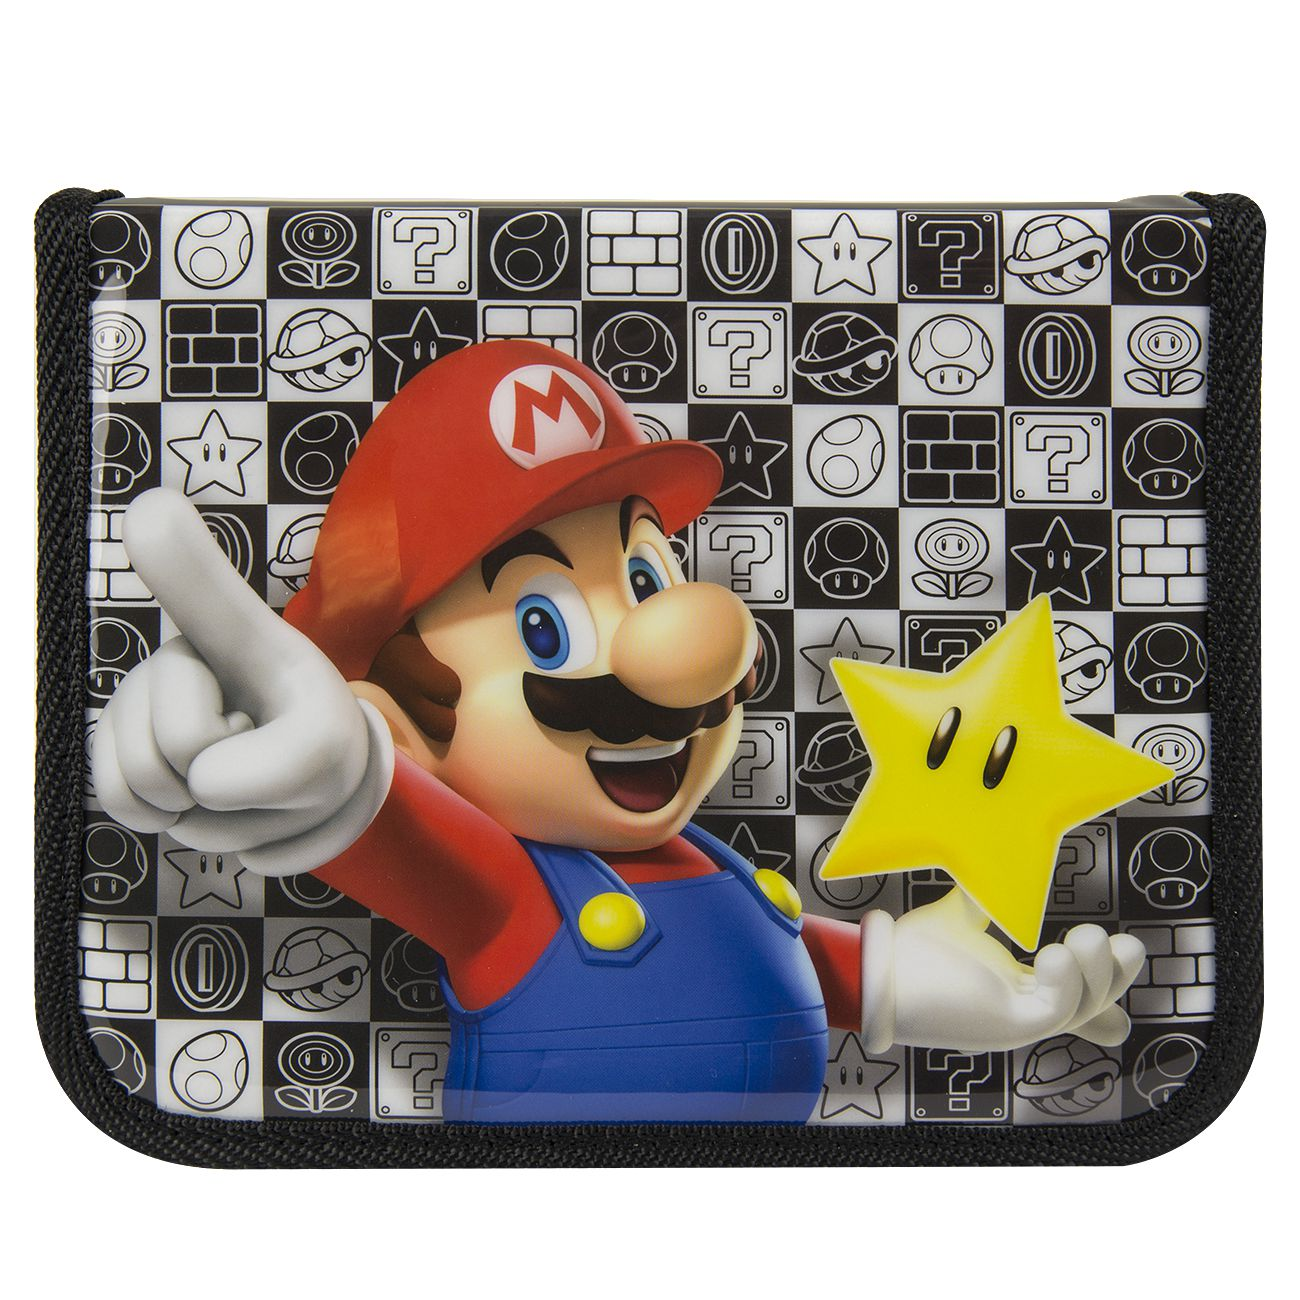 nintendo wii video games wii consoles walmart pdp universal nintendo 3ds system case super mario assortment